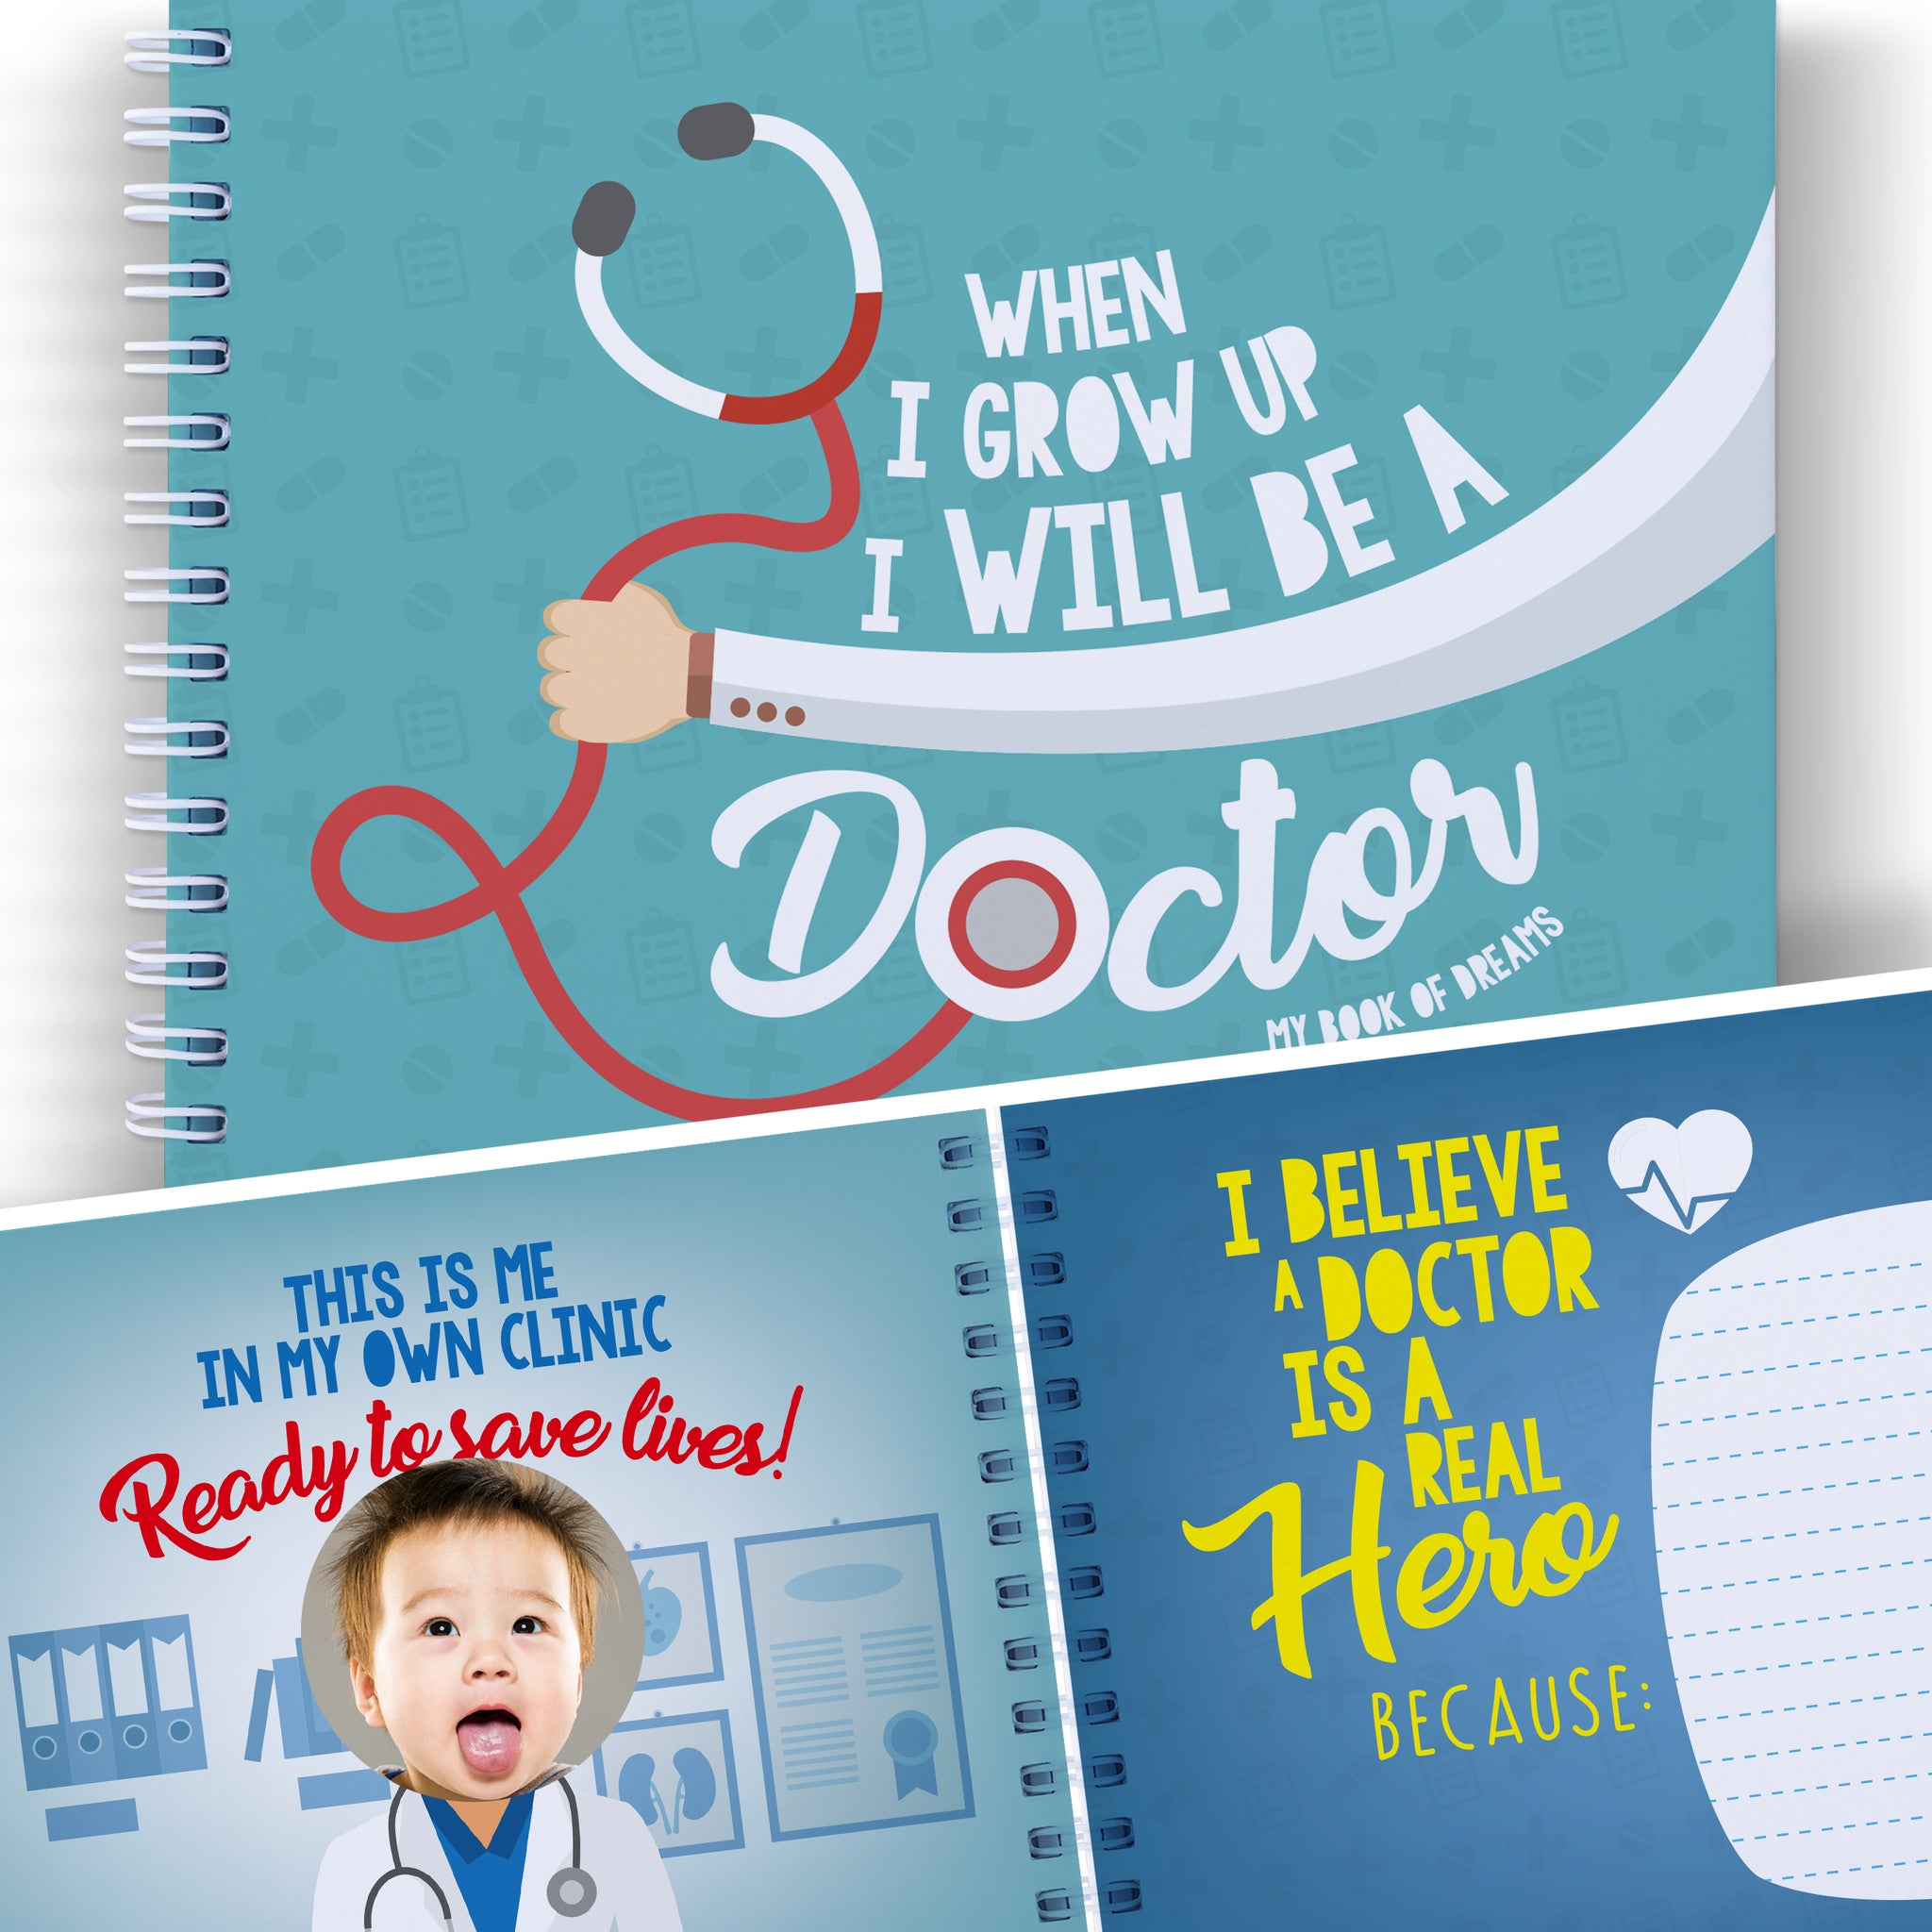 WHEN I GROW UP I WILL BE A DOCTOR - Let's Write the Future with This Memory Book of Dreams.